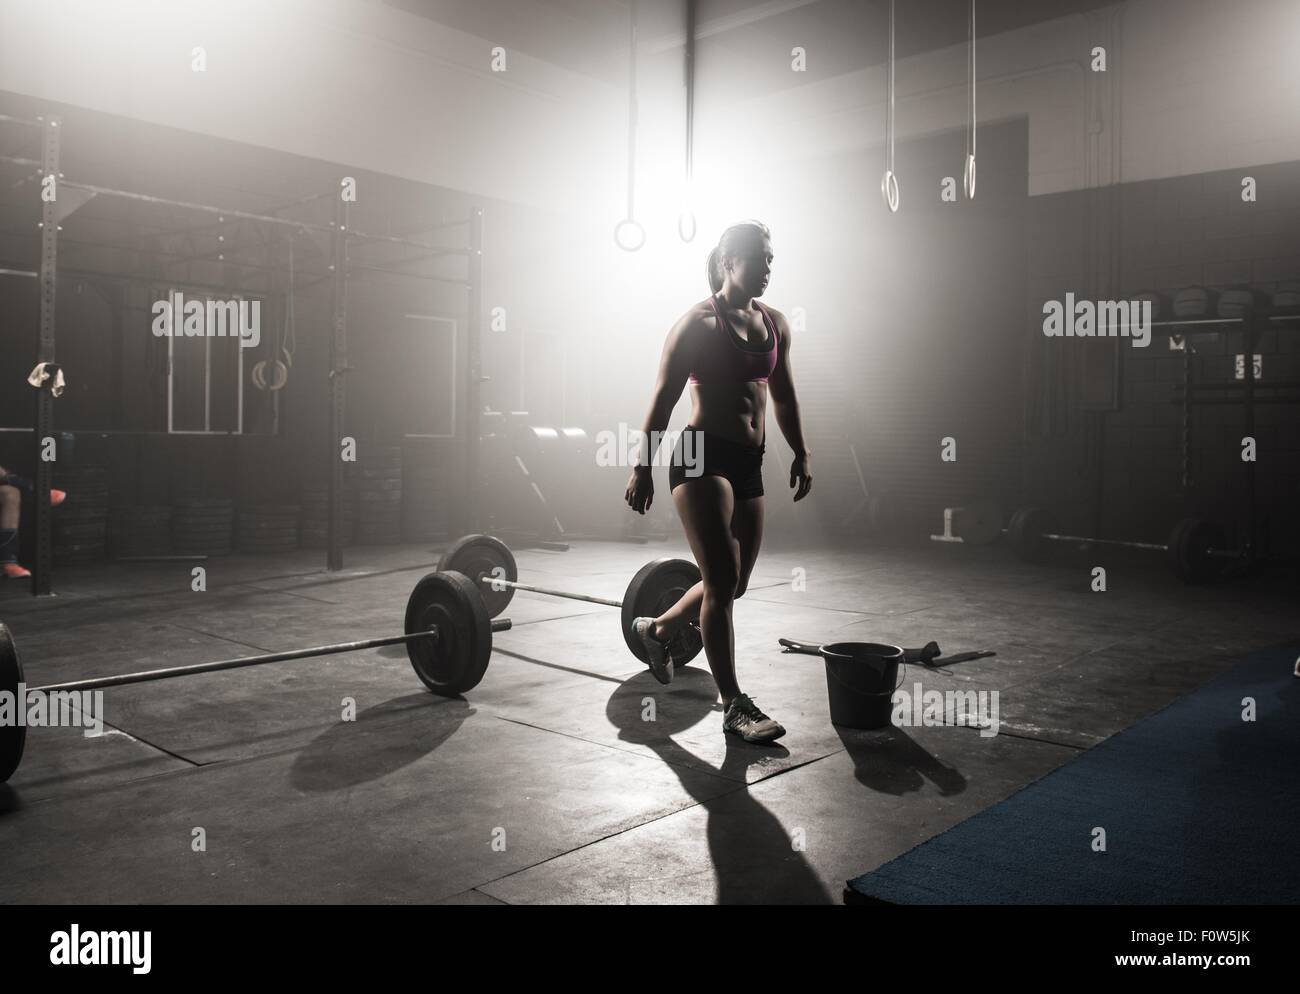 Young woman working out in gym Photo Stock